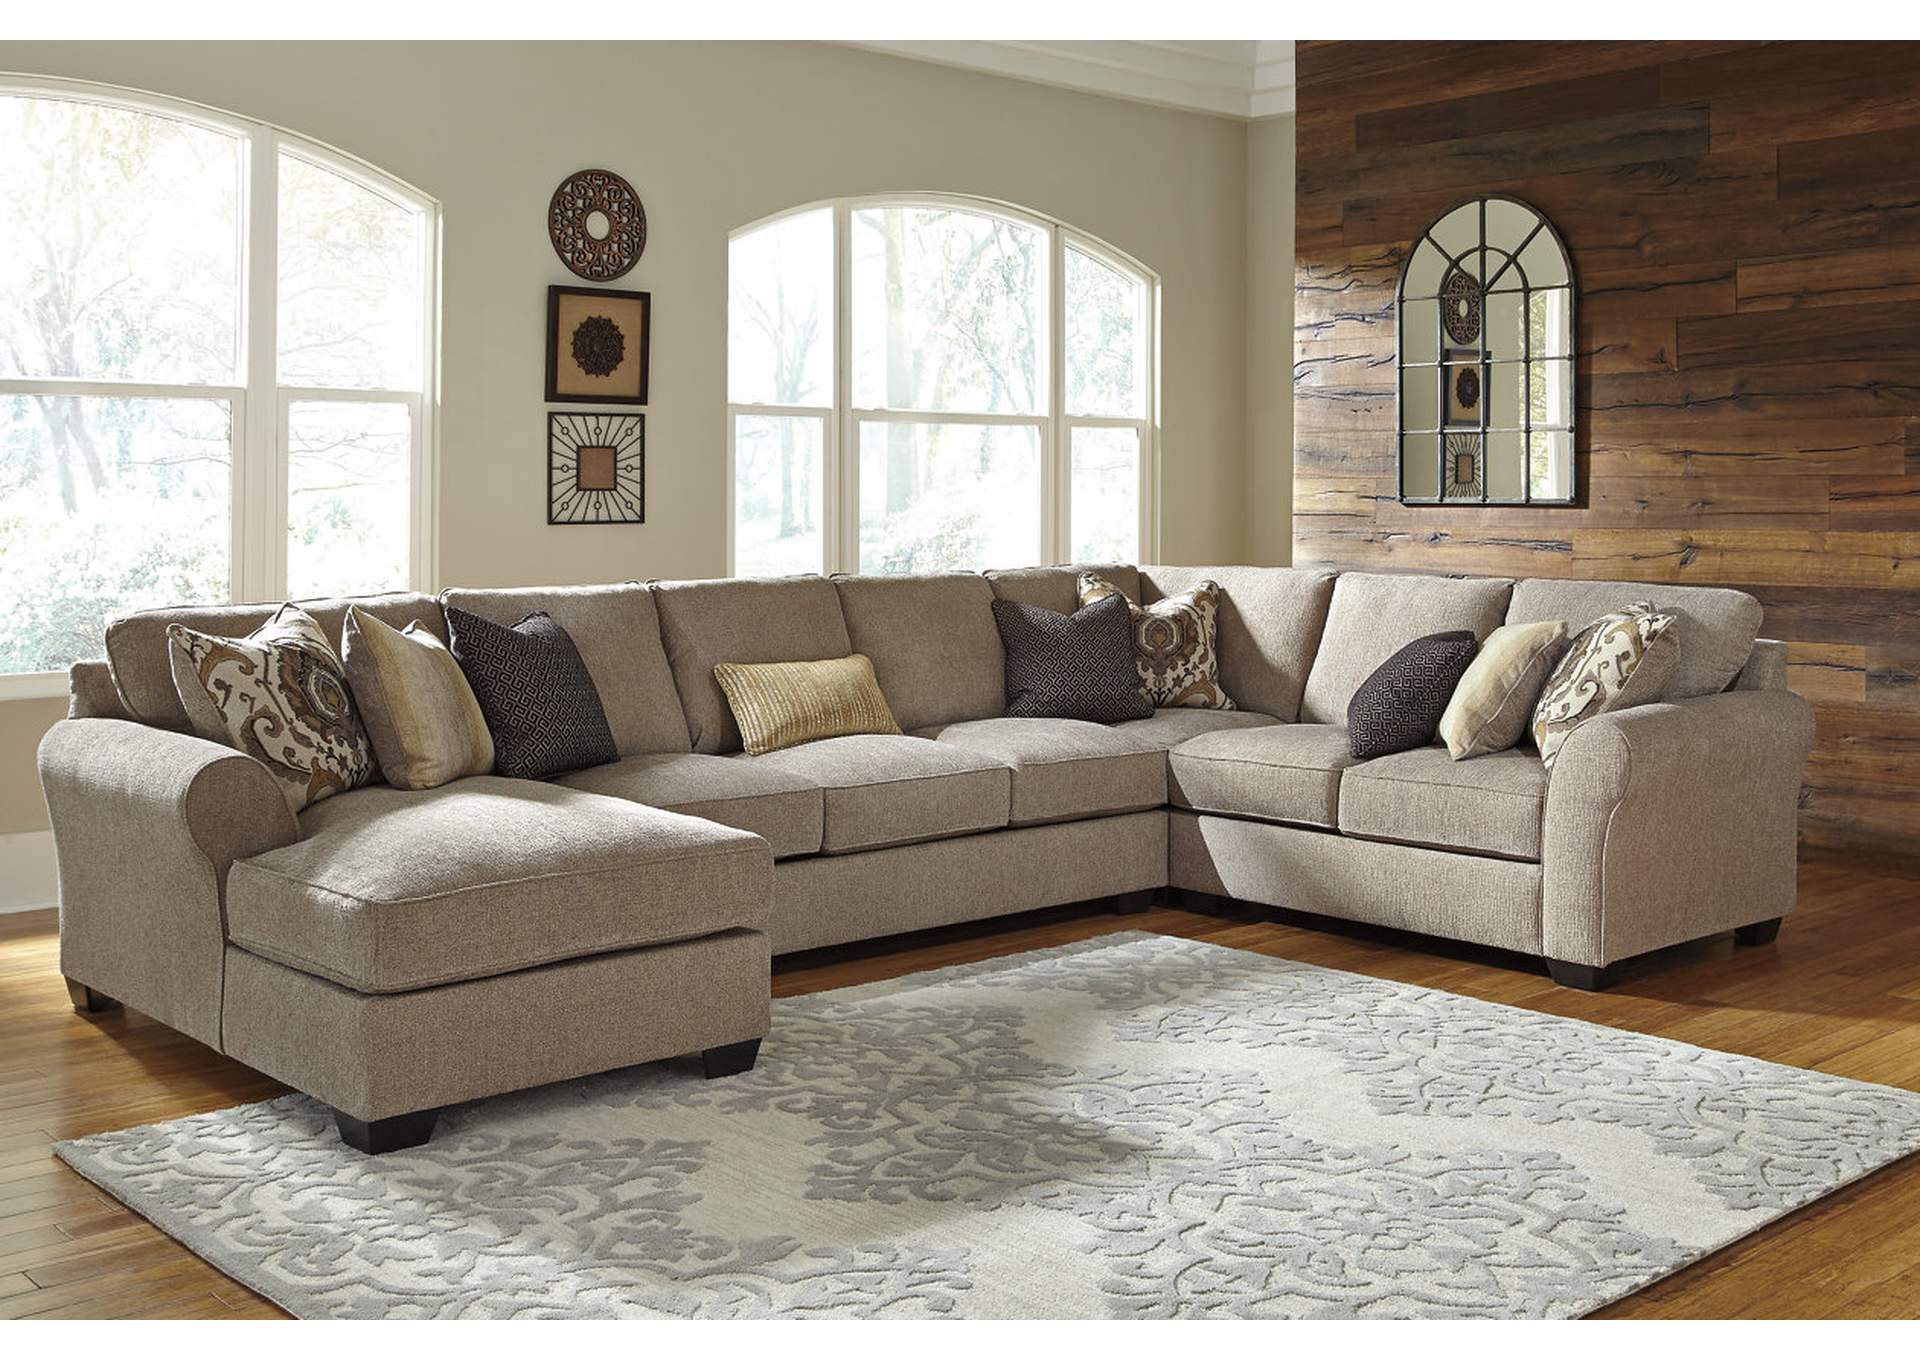 Pantomine Driftwood Sectional w/Left Facing Corner Chaise,Benchcraft